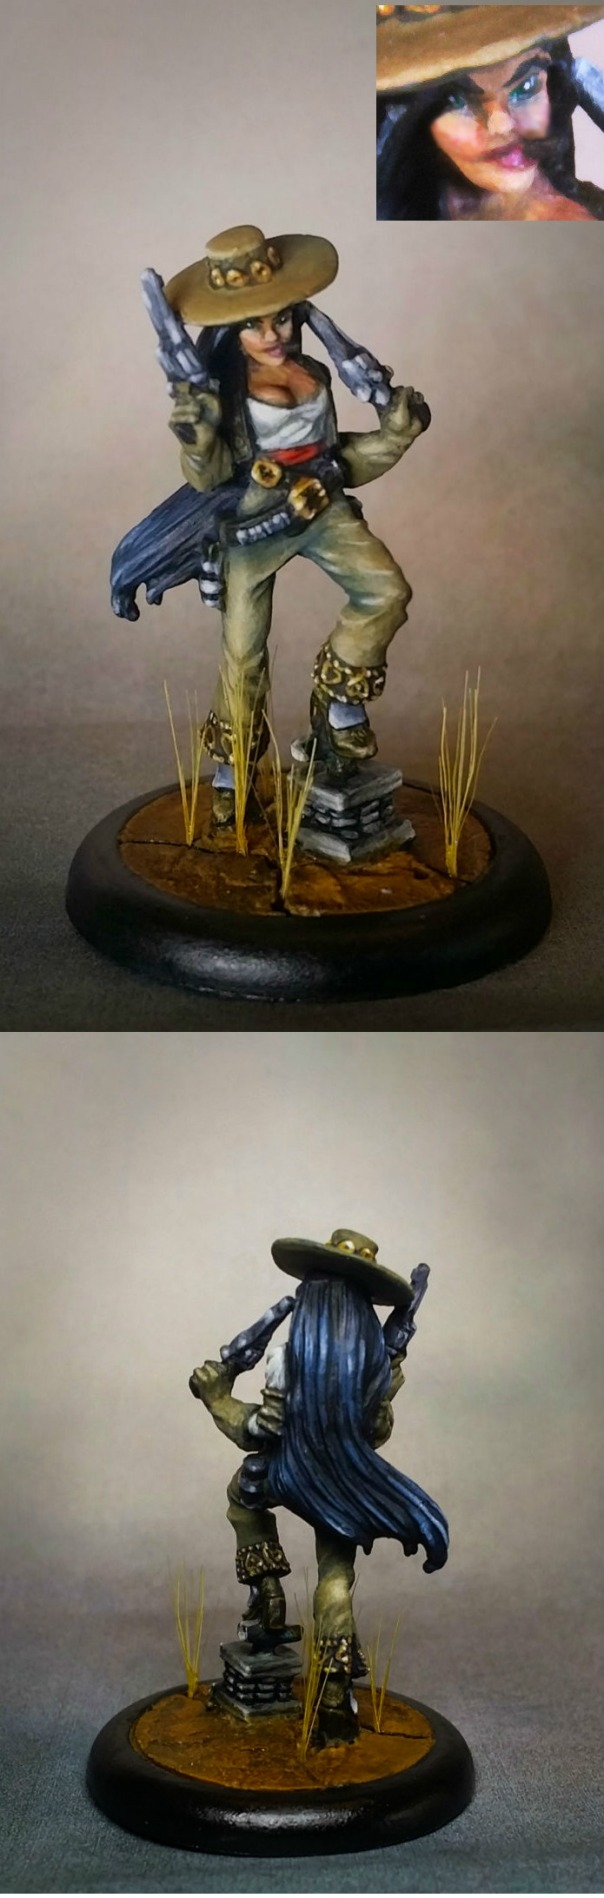 Wyrd Malifaux Perdita Ortega - Gaming Display with Level 2 base